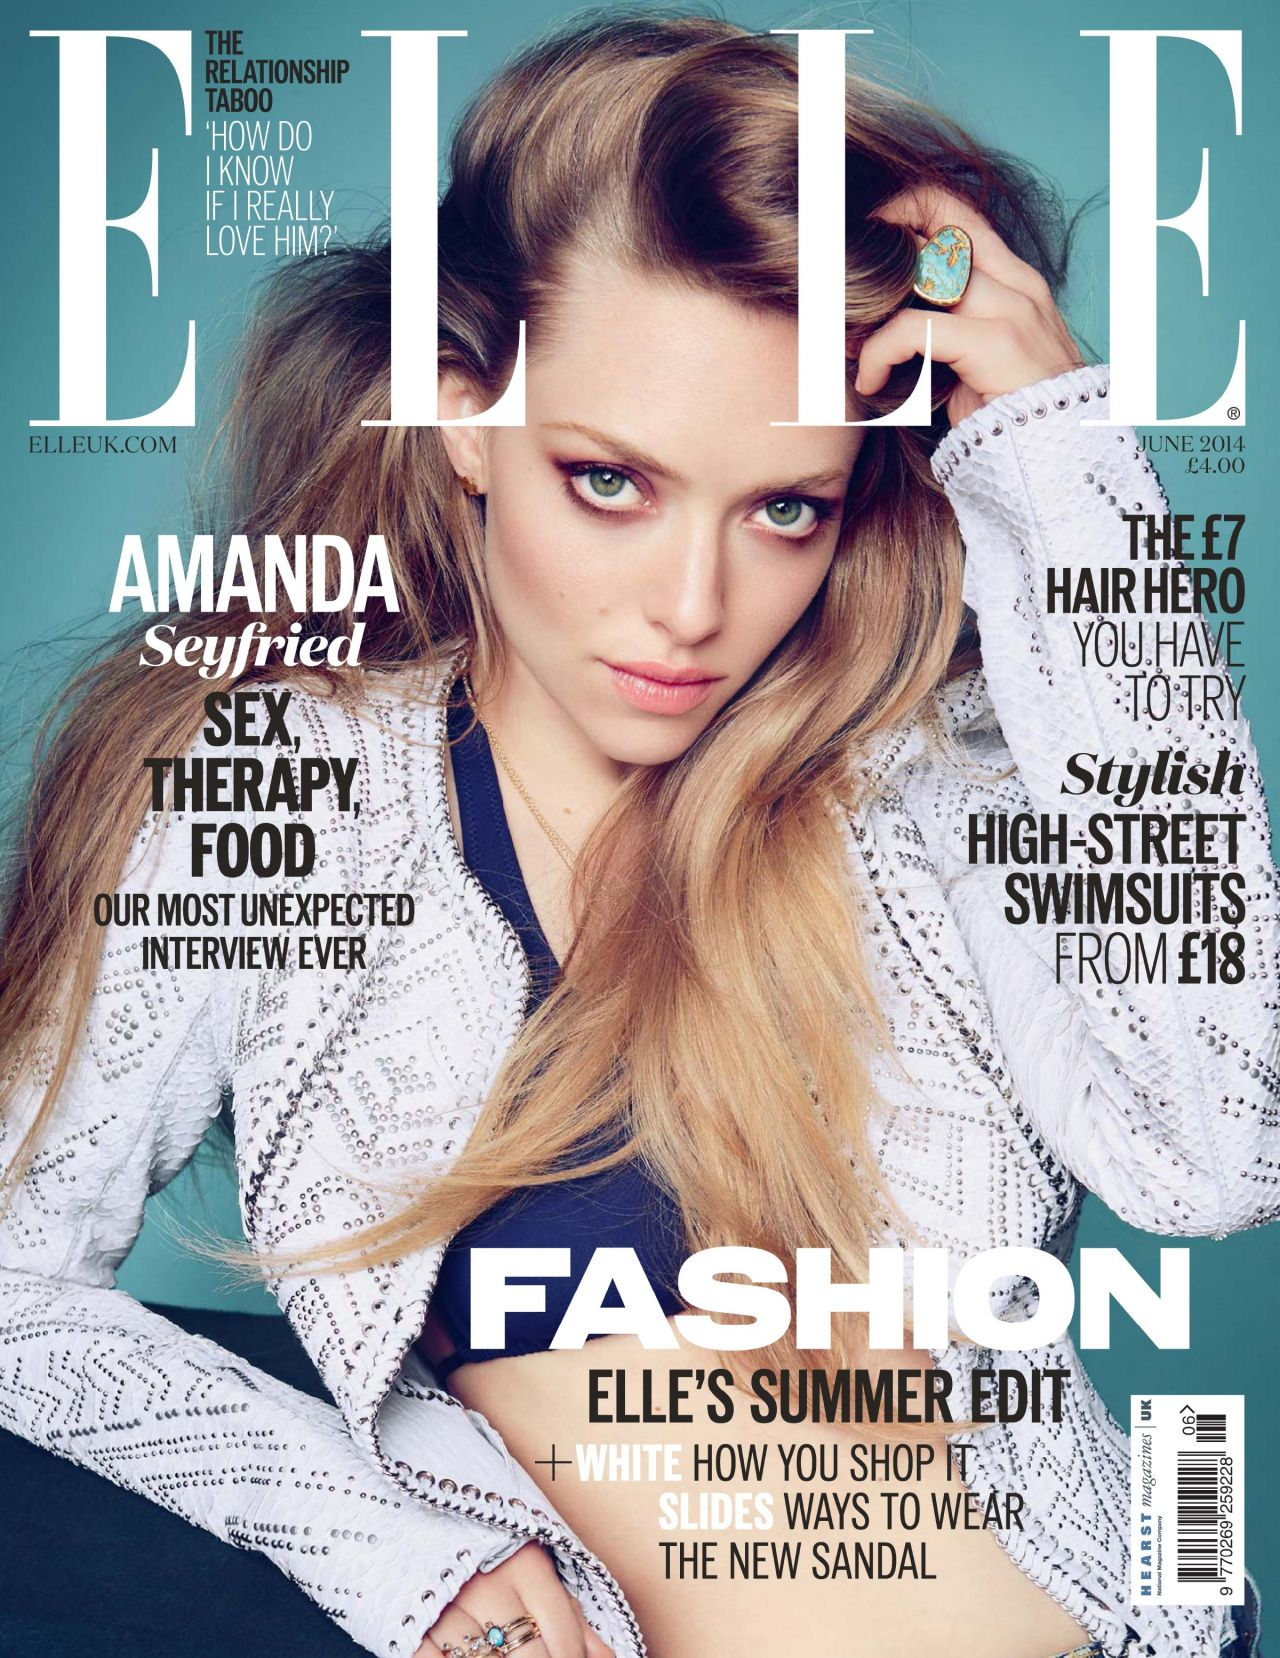 Elle Magazine France February March: Elle Magazine (UK) June 2014 Cover